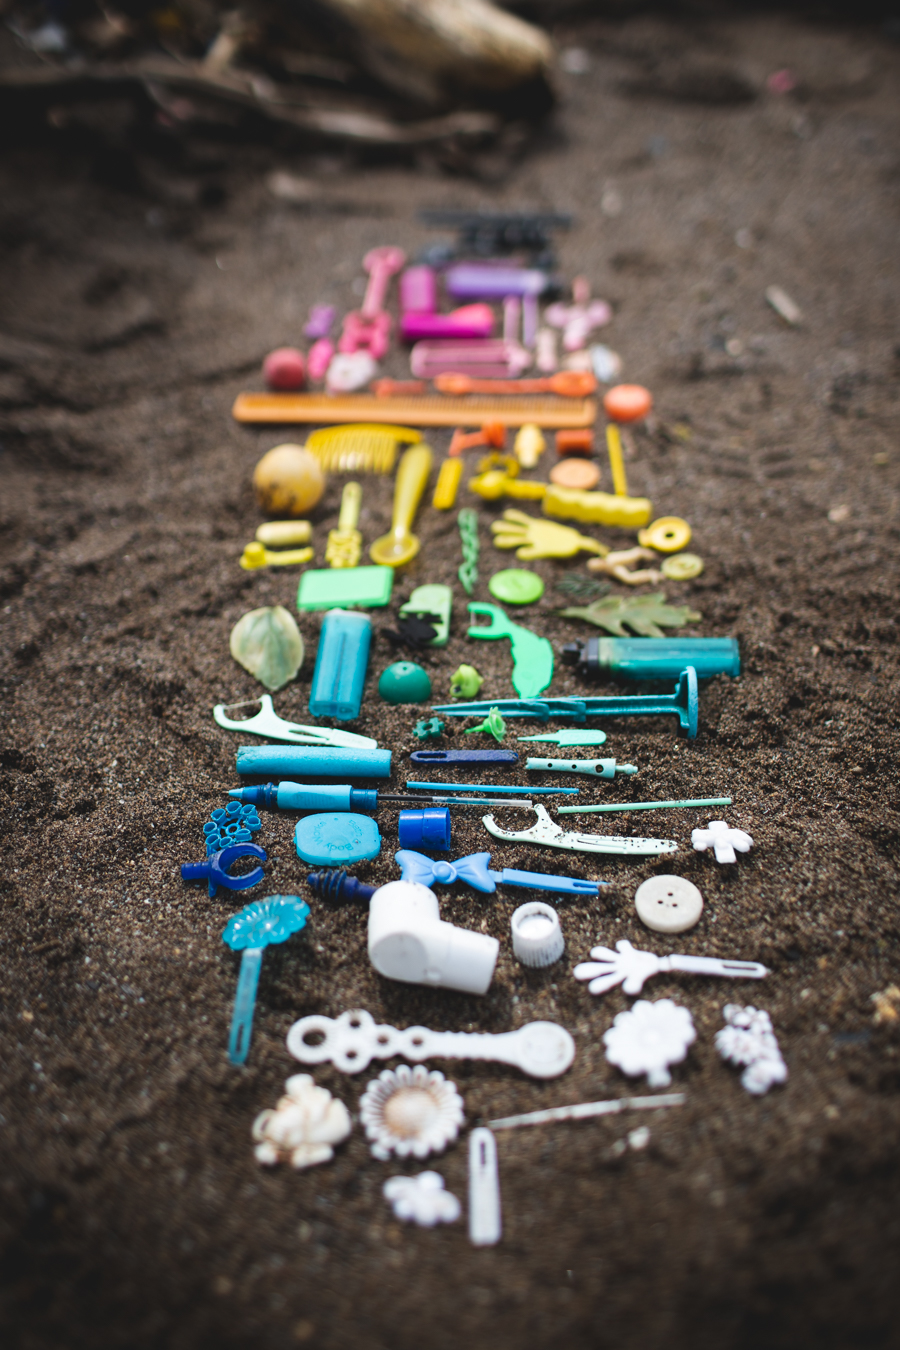 beach plastic, plastic pollution, lake erie, the dainty squid